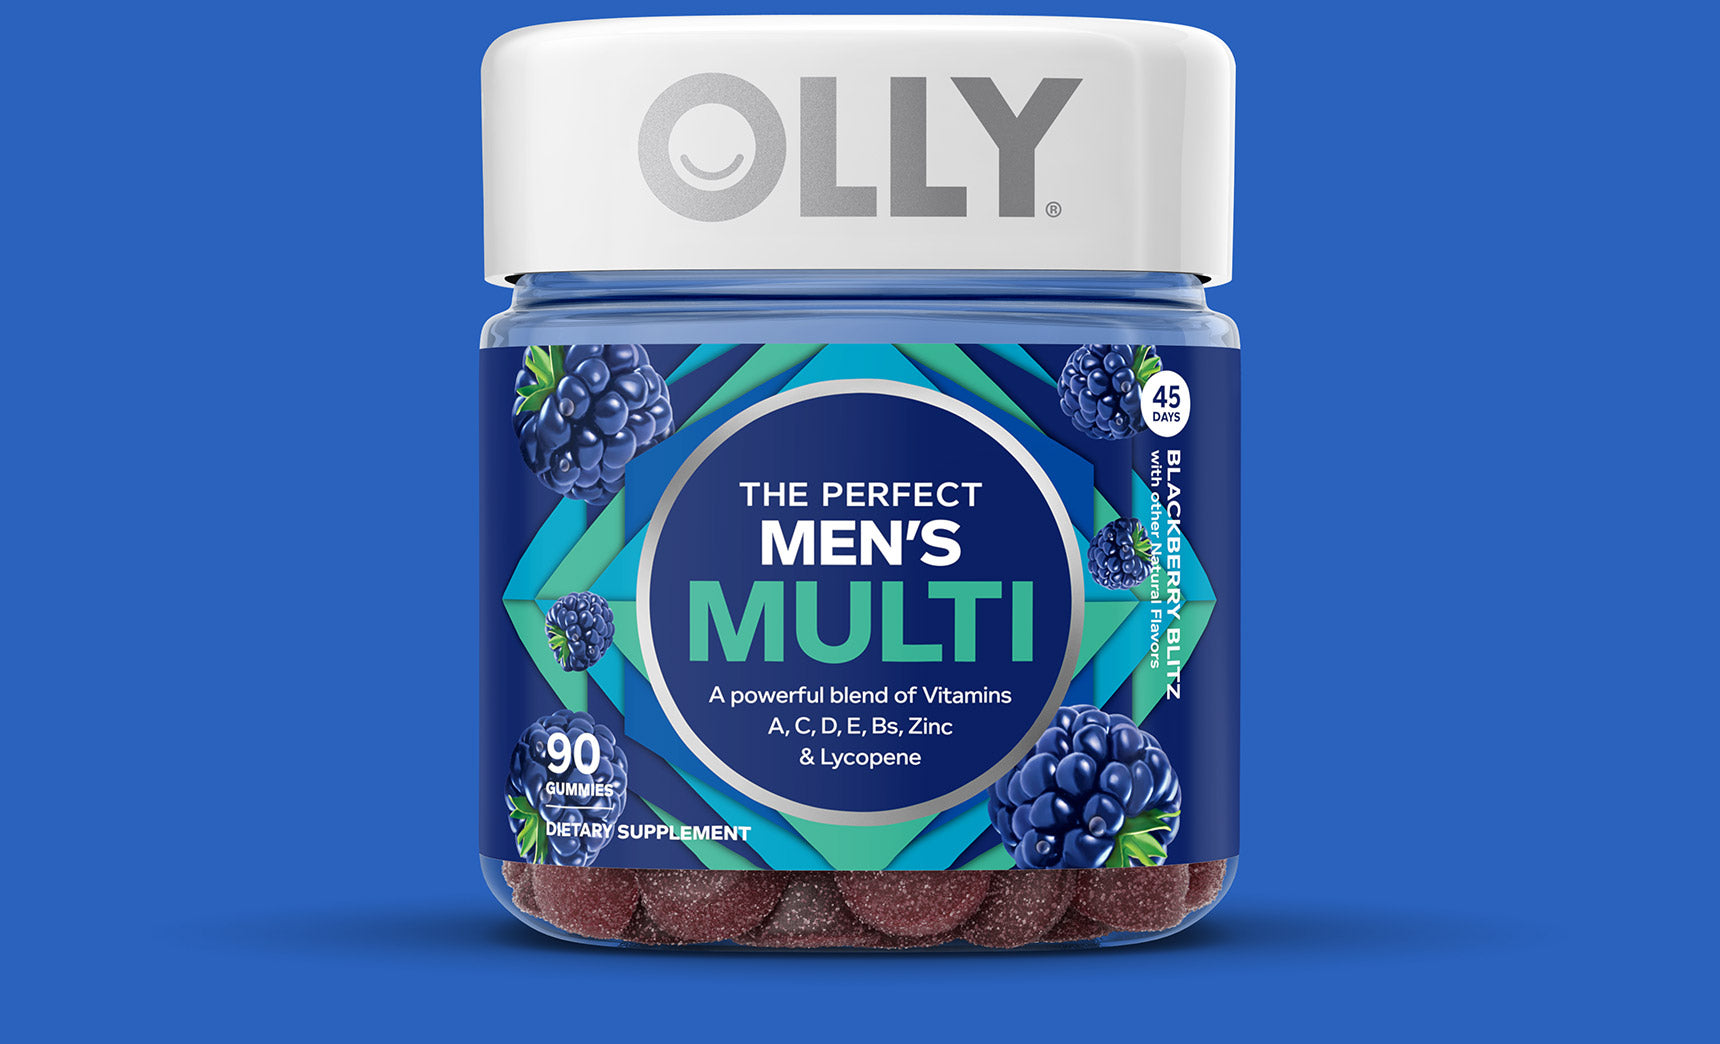 The Perfect Men's Multi